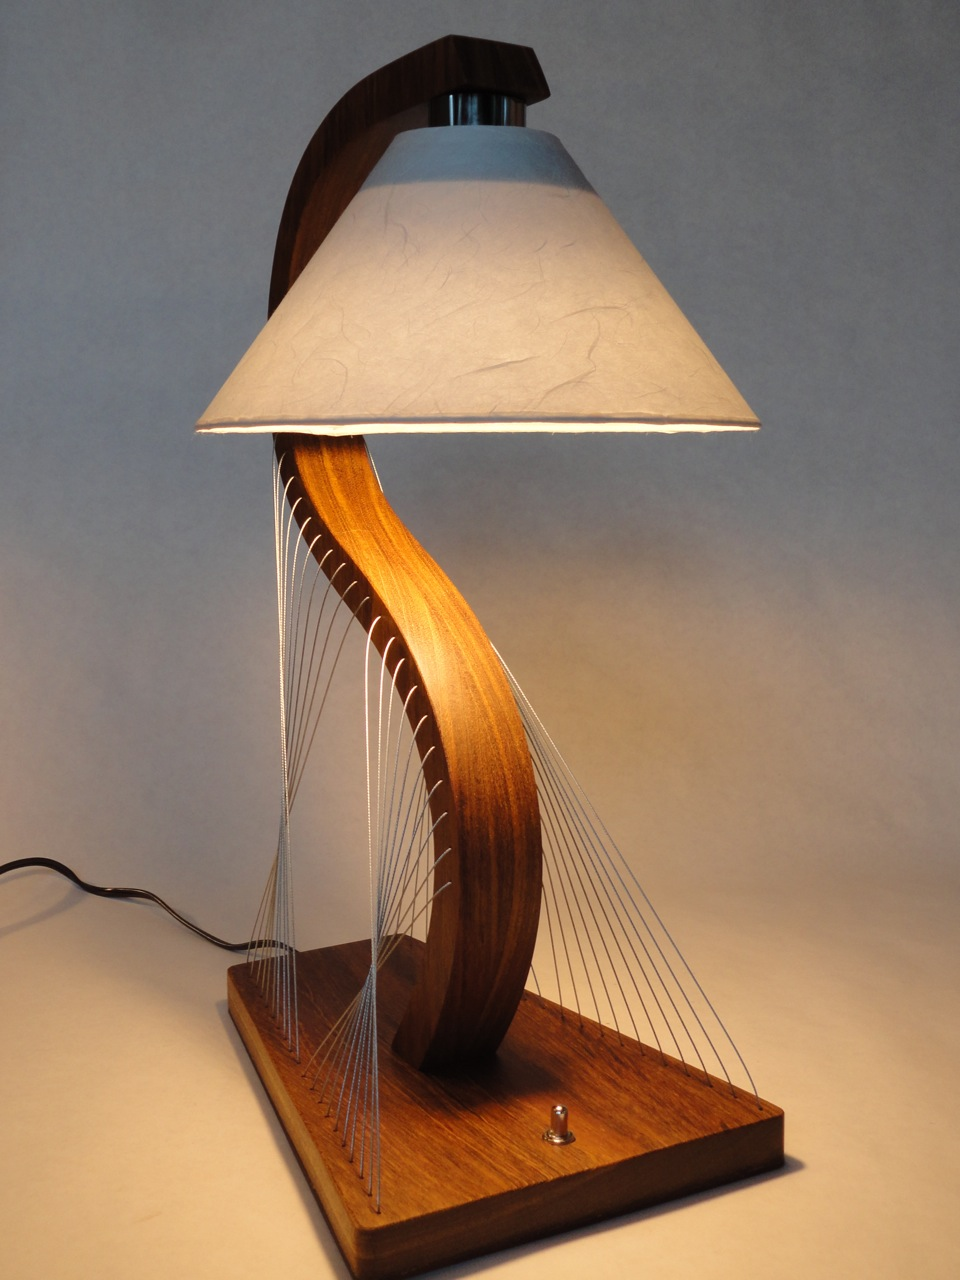 Custom bedside lamps robby cuthbert design - Pictures of bed side ...